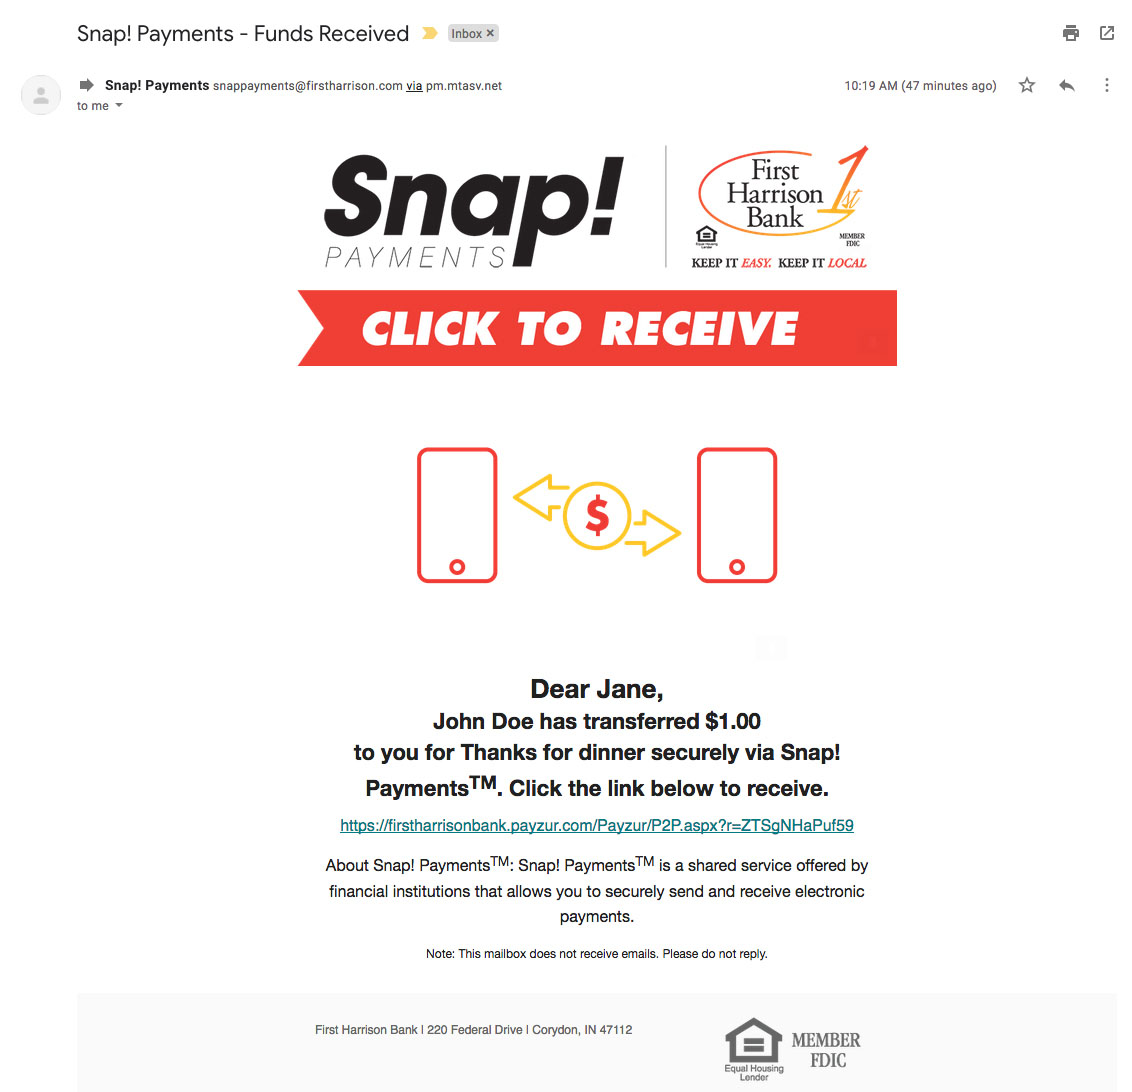 How-To Services - Snap Payments Funds Received Email